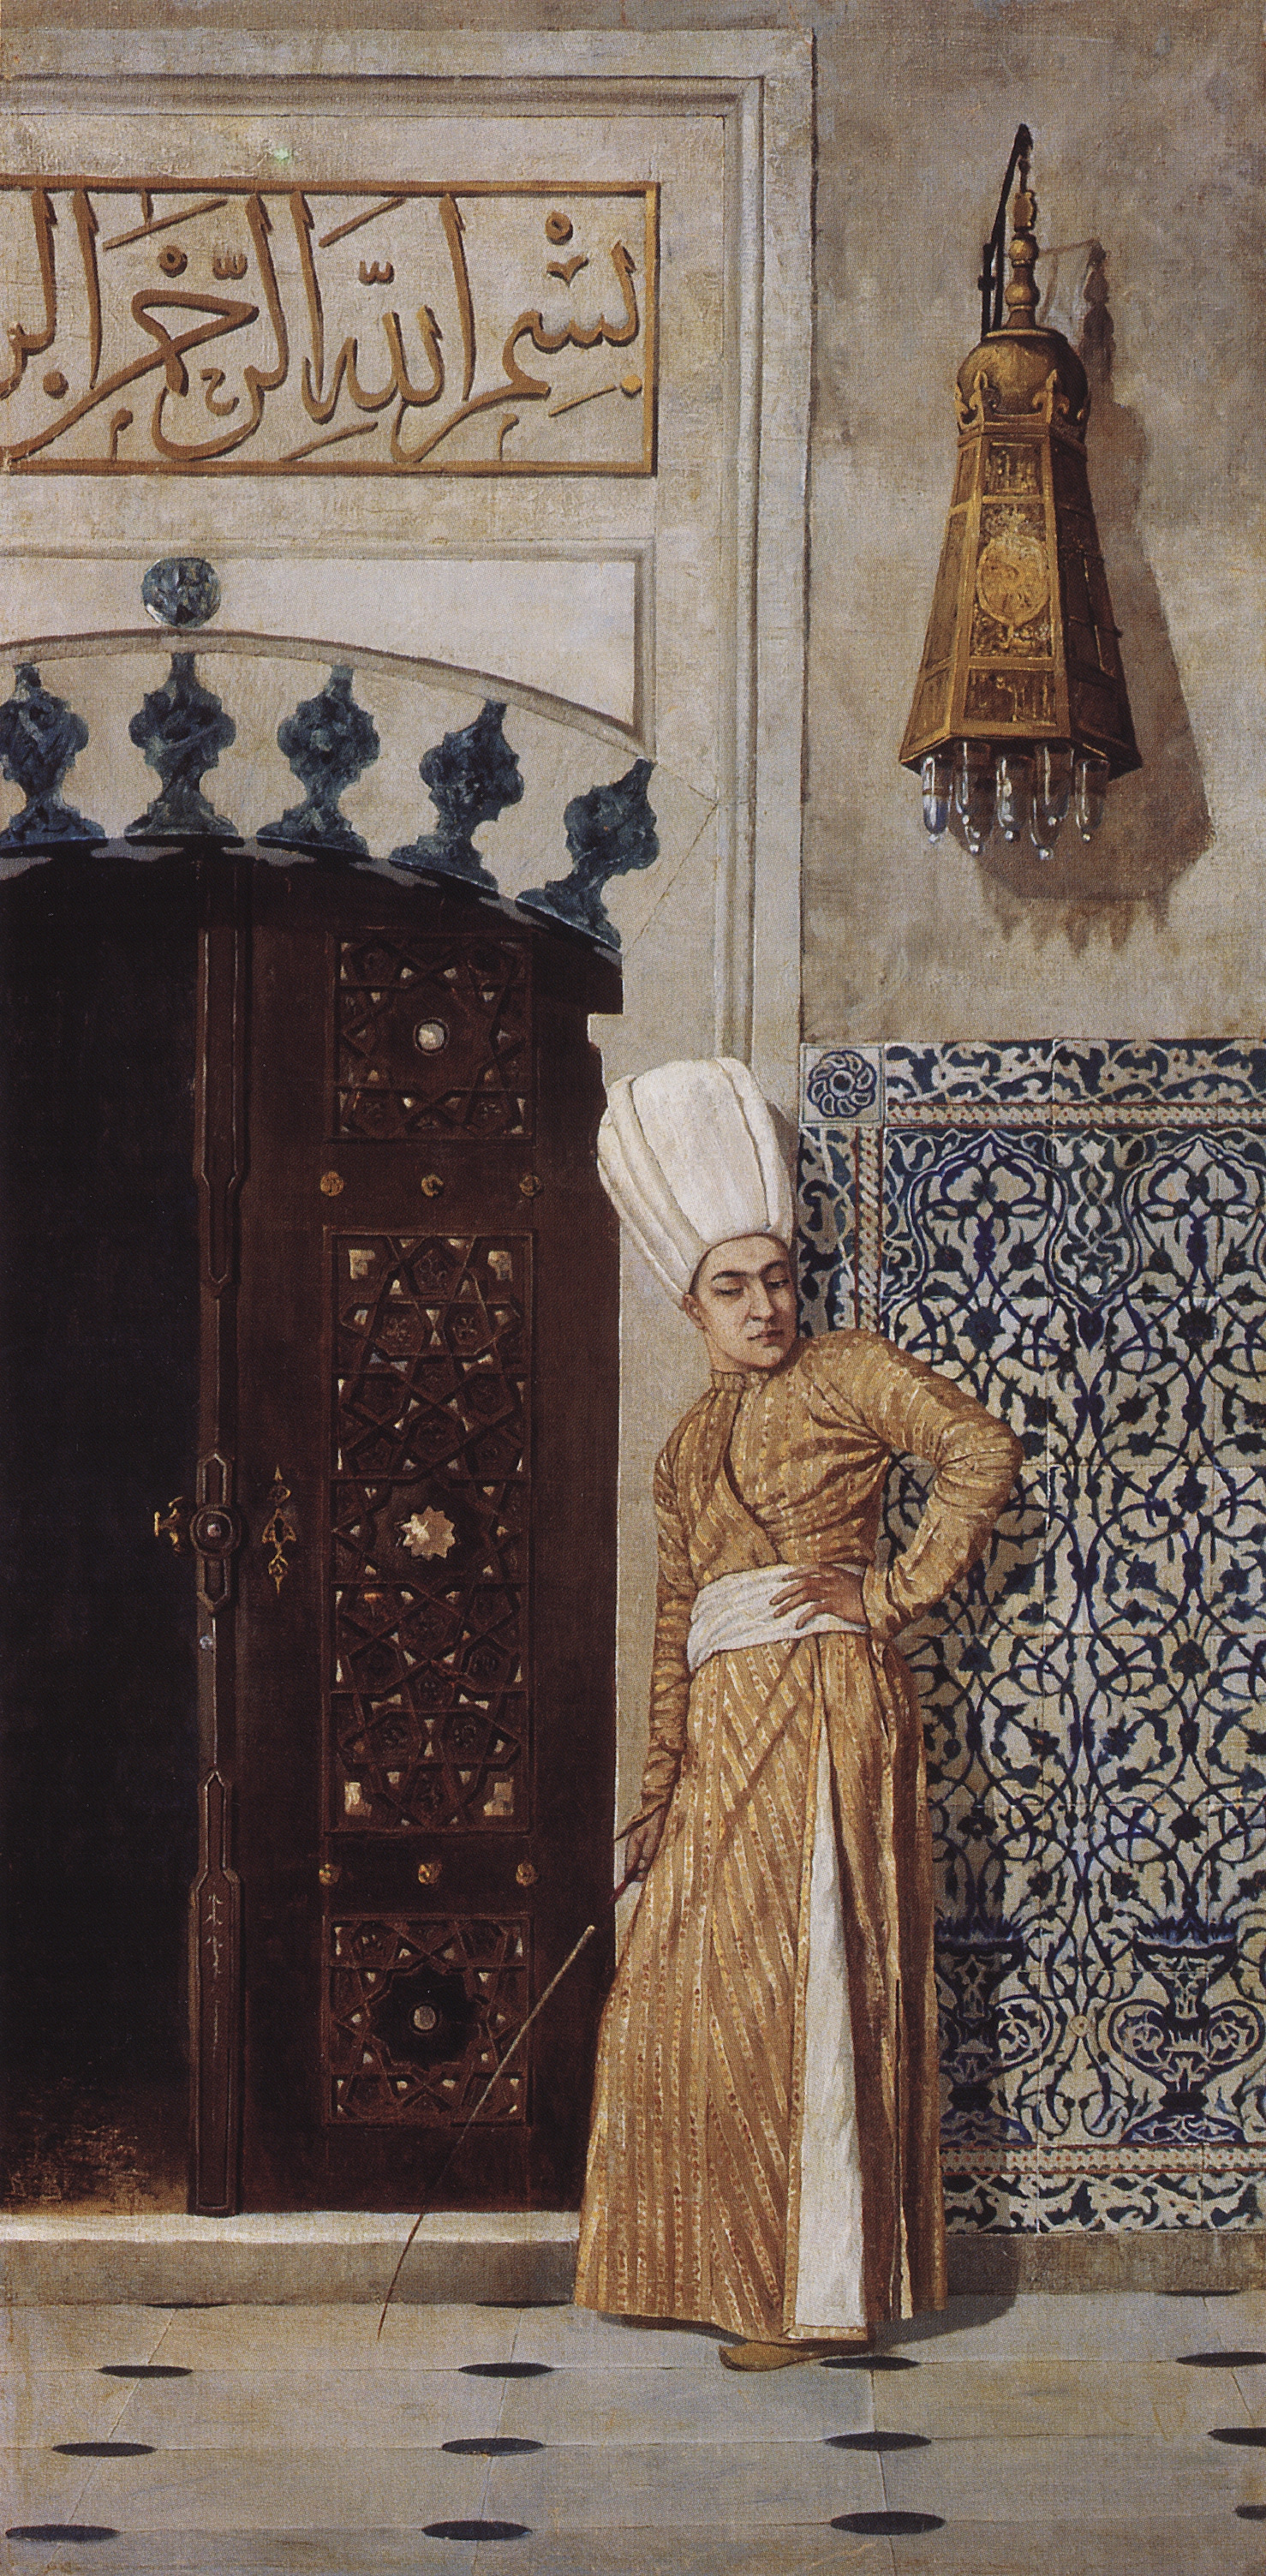 Vasily Vasilyevich Vereshchagin. The eunuch at the door of the harem